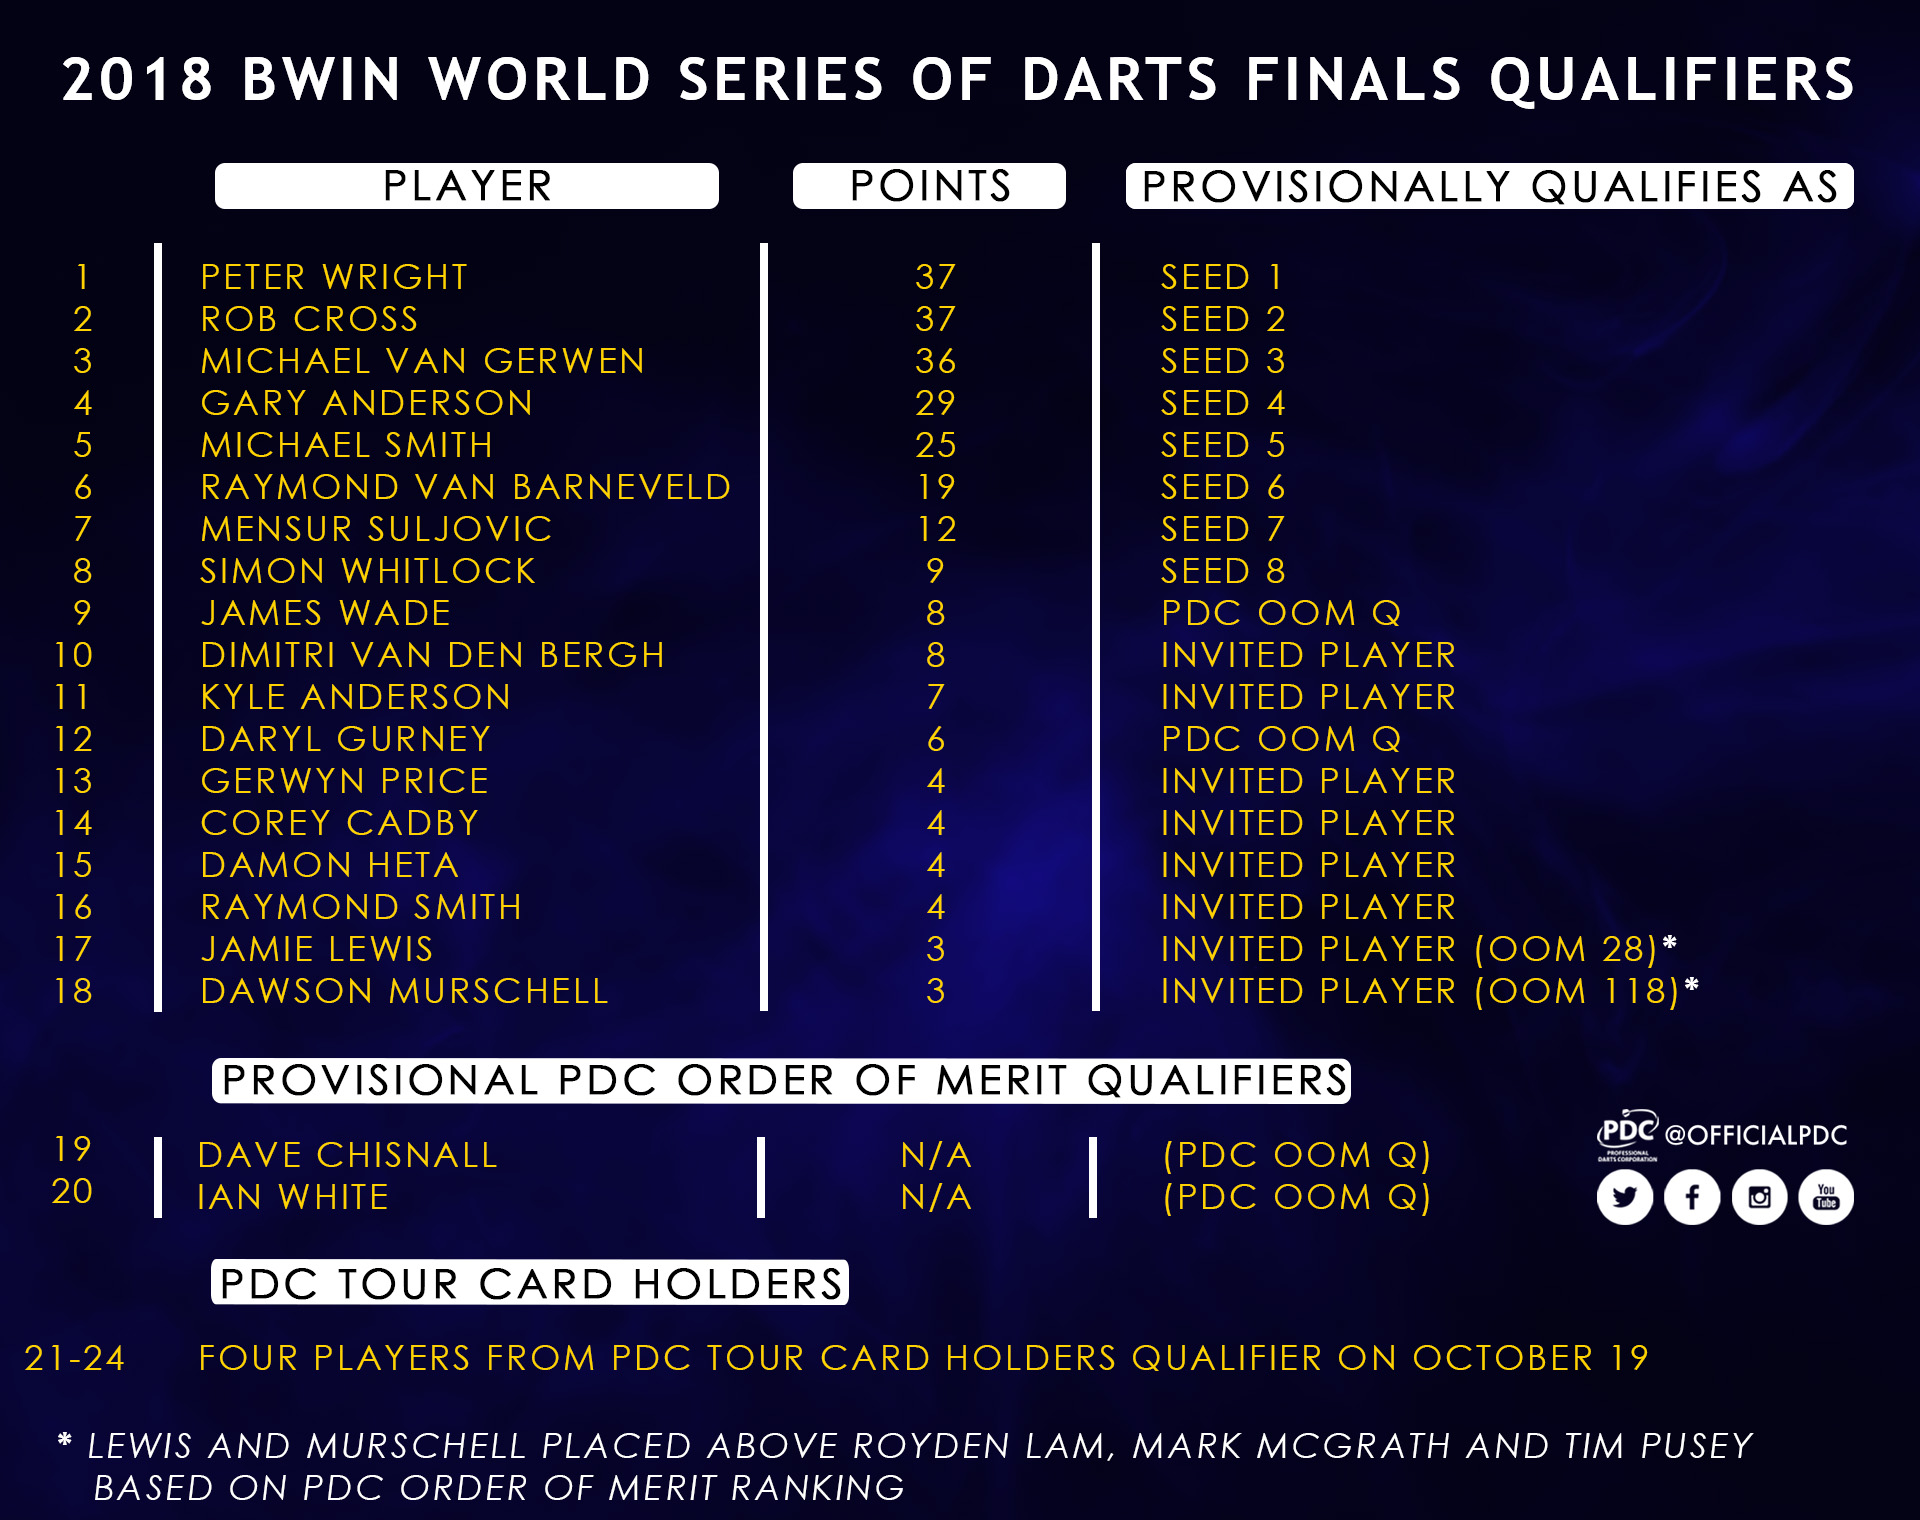 World Series Finals Qualifying Graphic (PDC)